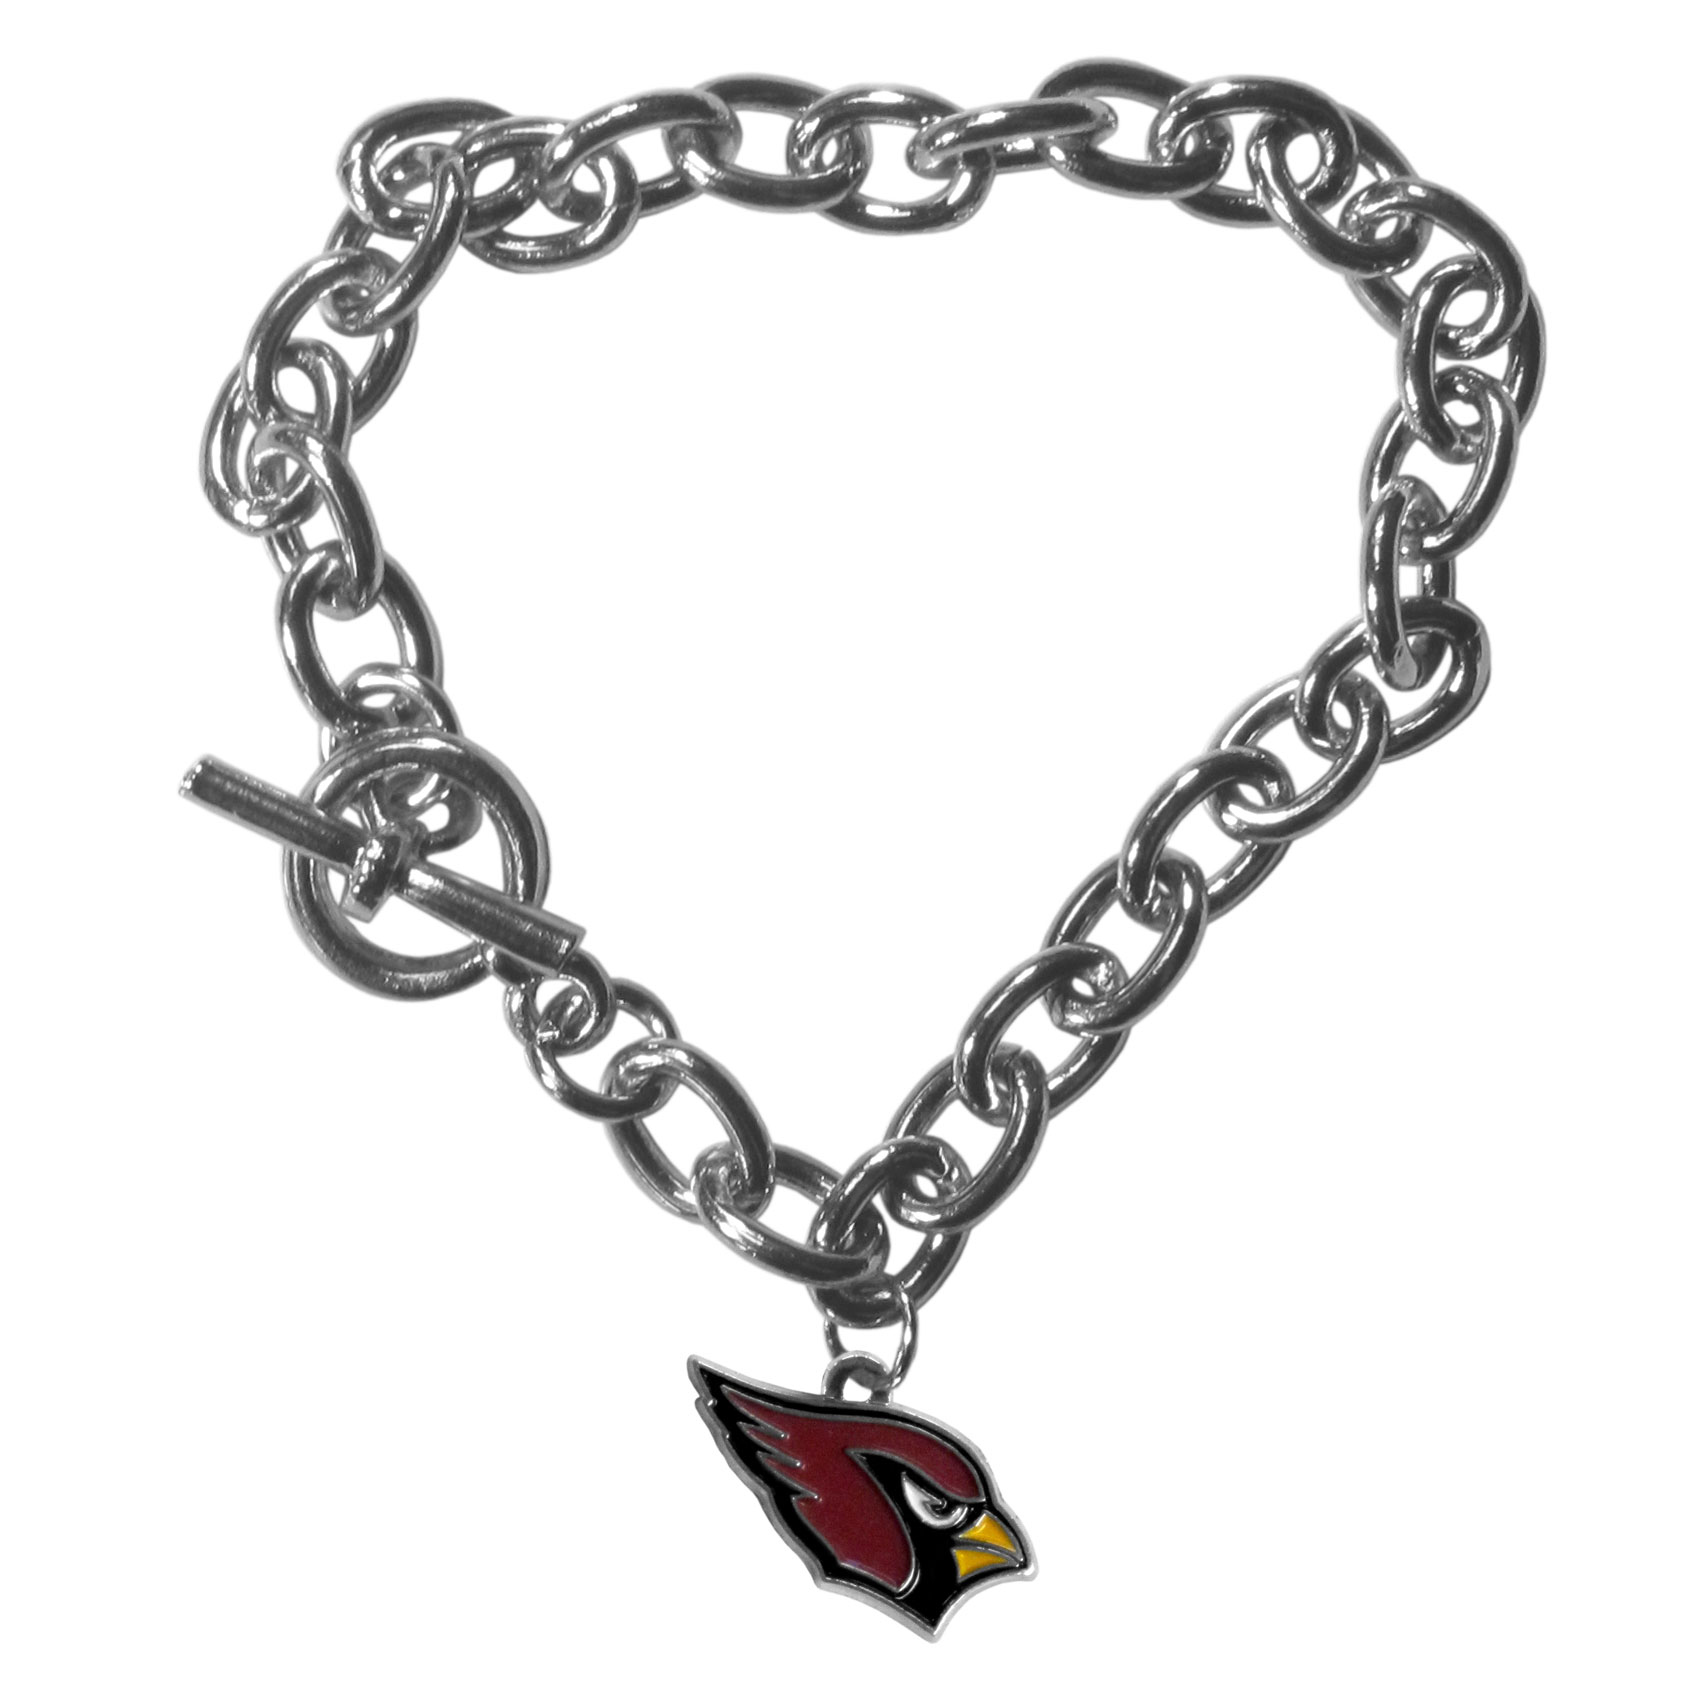 Arizona Cardinals Charm Chain Bracelets - Our classic single charm bracelet is a great way to show off your team pride! The 7.5 inch large link chain features a high polish Arizona Cardinals charm and features a toggle clasp which makes it super easy to take on and off. Officially licensed NFL product Licensee: Siskiyou Buckle .com